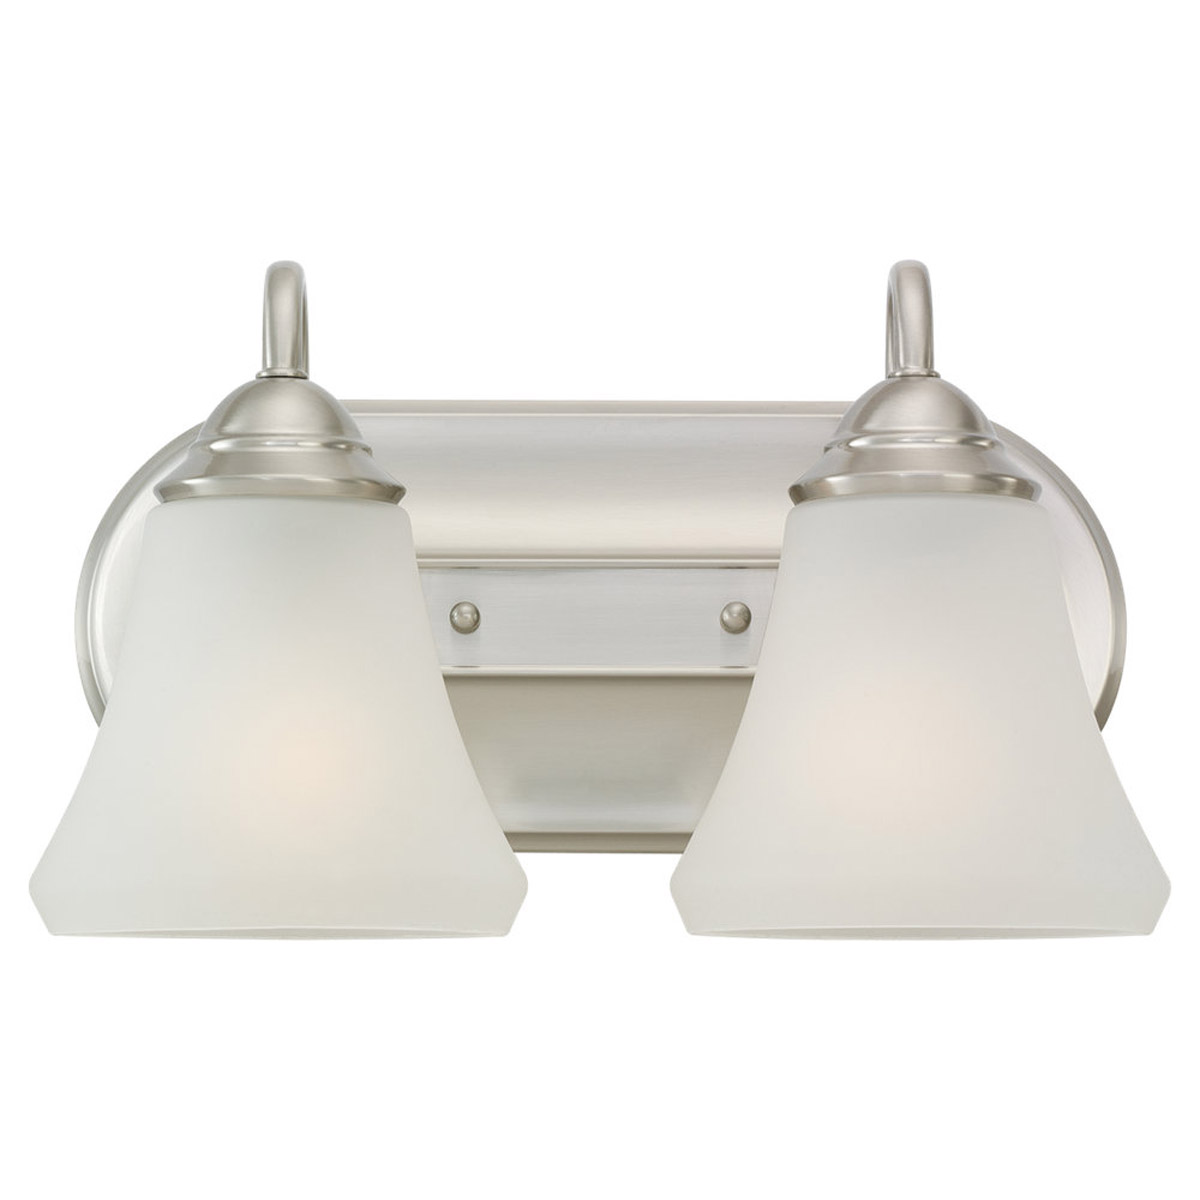 Sea Gull Lighting Fiona 2 Light Wall / Bath / Vanity in Brushed Nickel 44556-962 photo